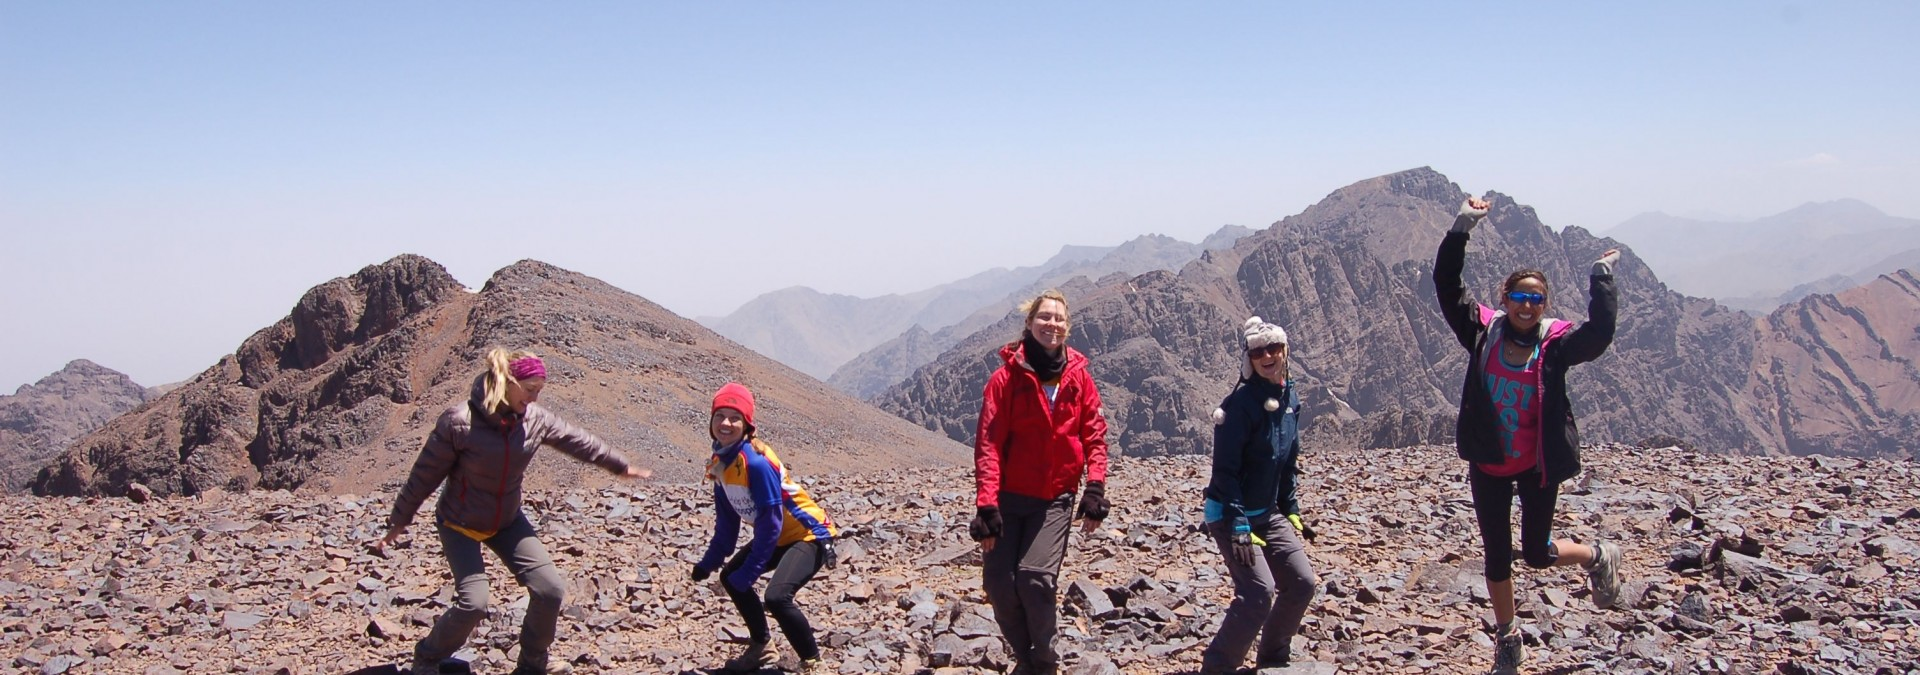 Jumping for joy on Mount Toubkal